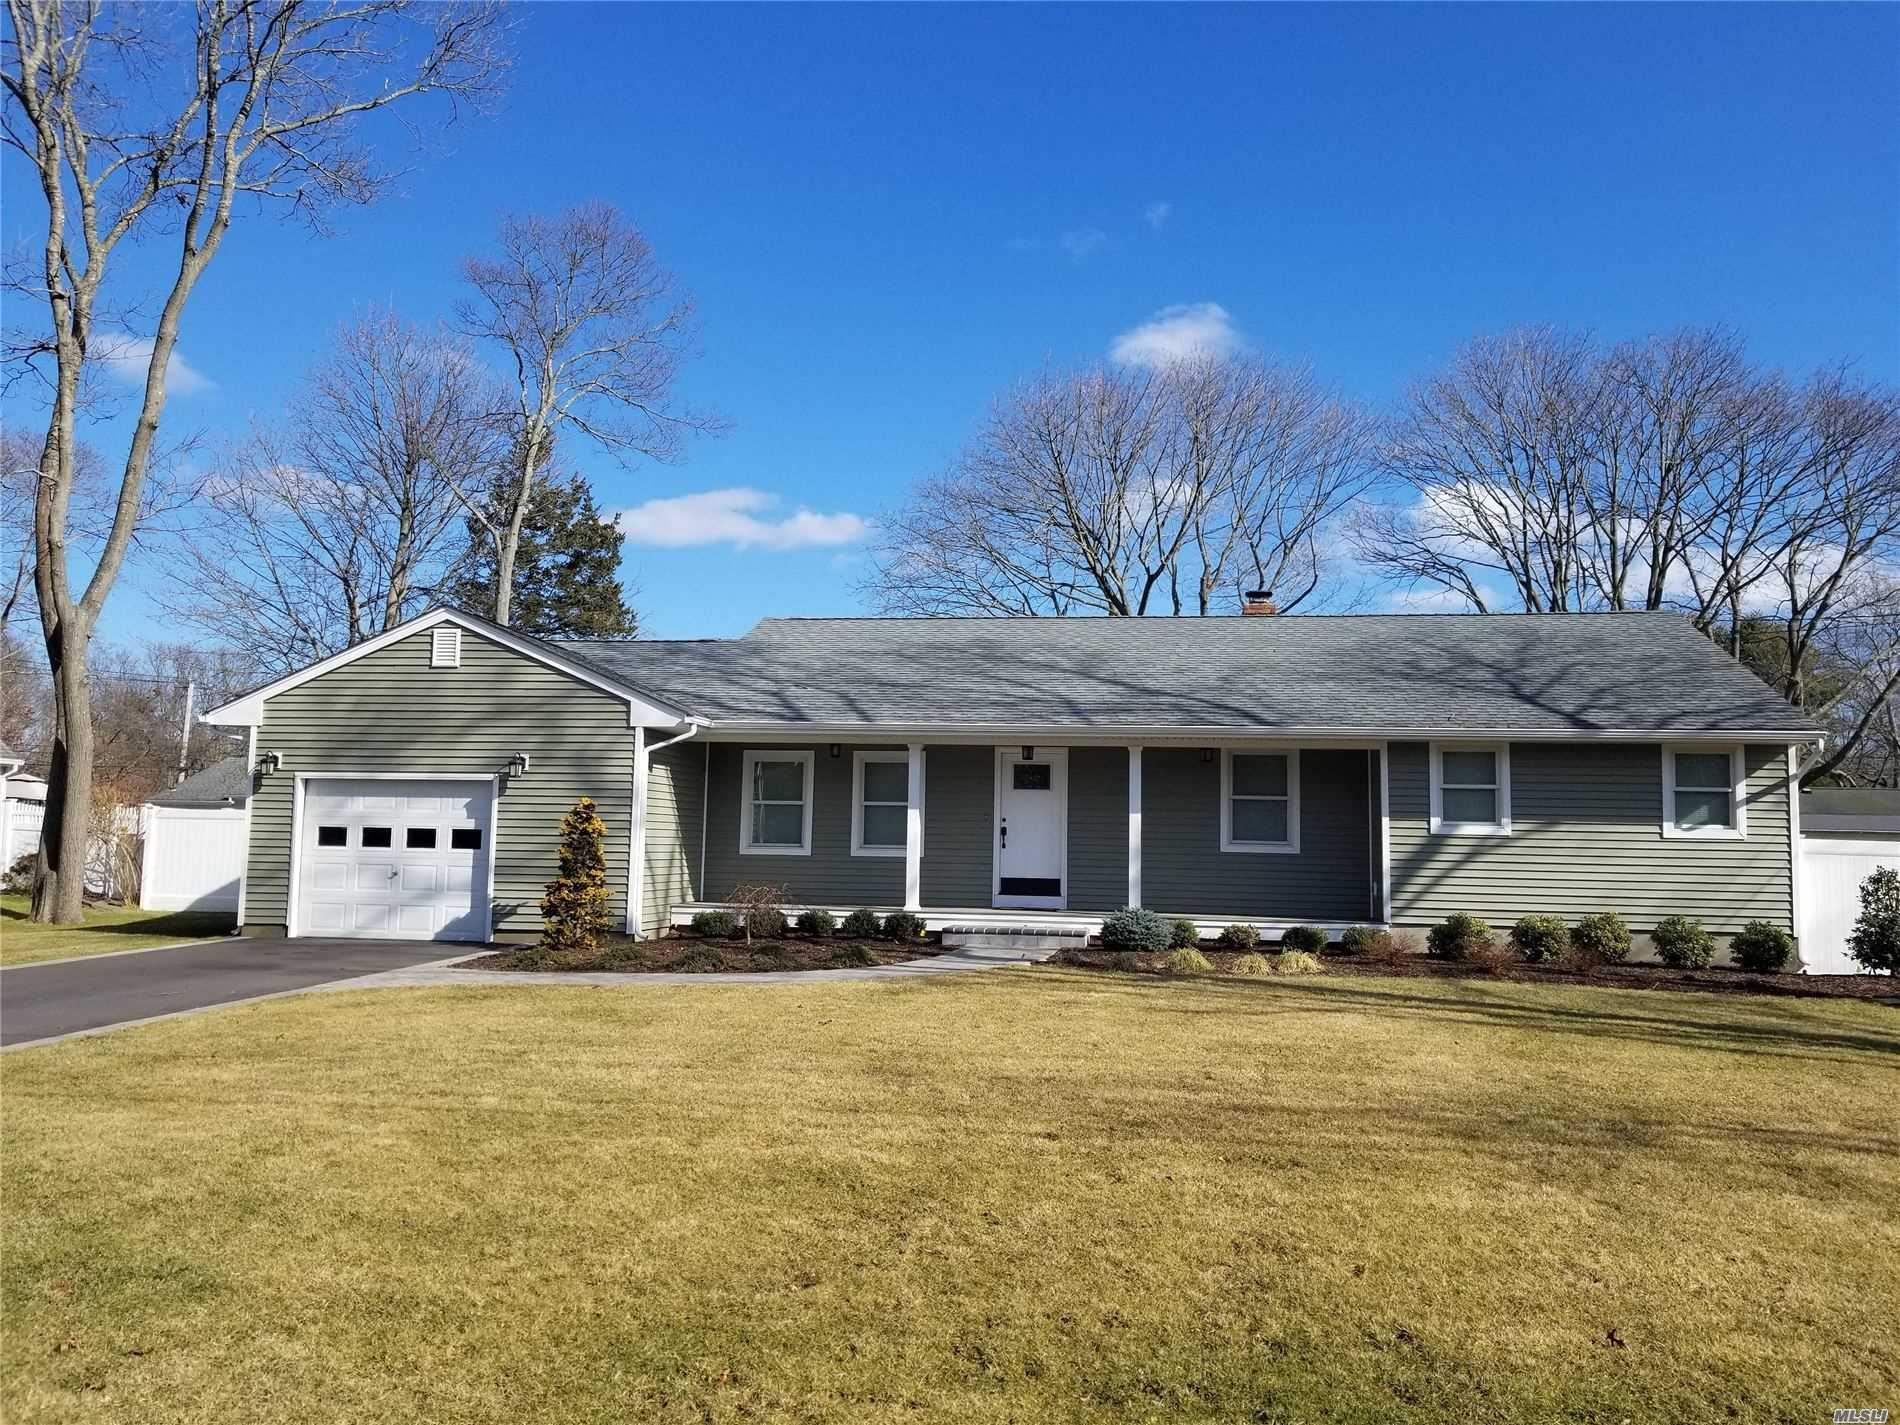 71 Cooks Road, Patchogue, NY 11772 - MLS#: 3200154